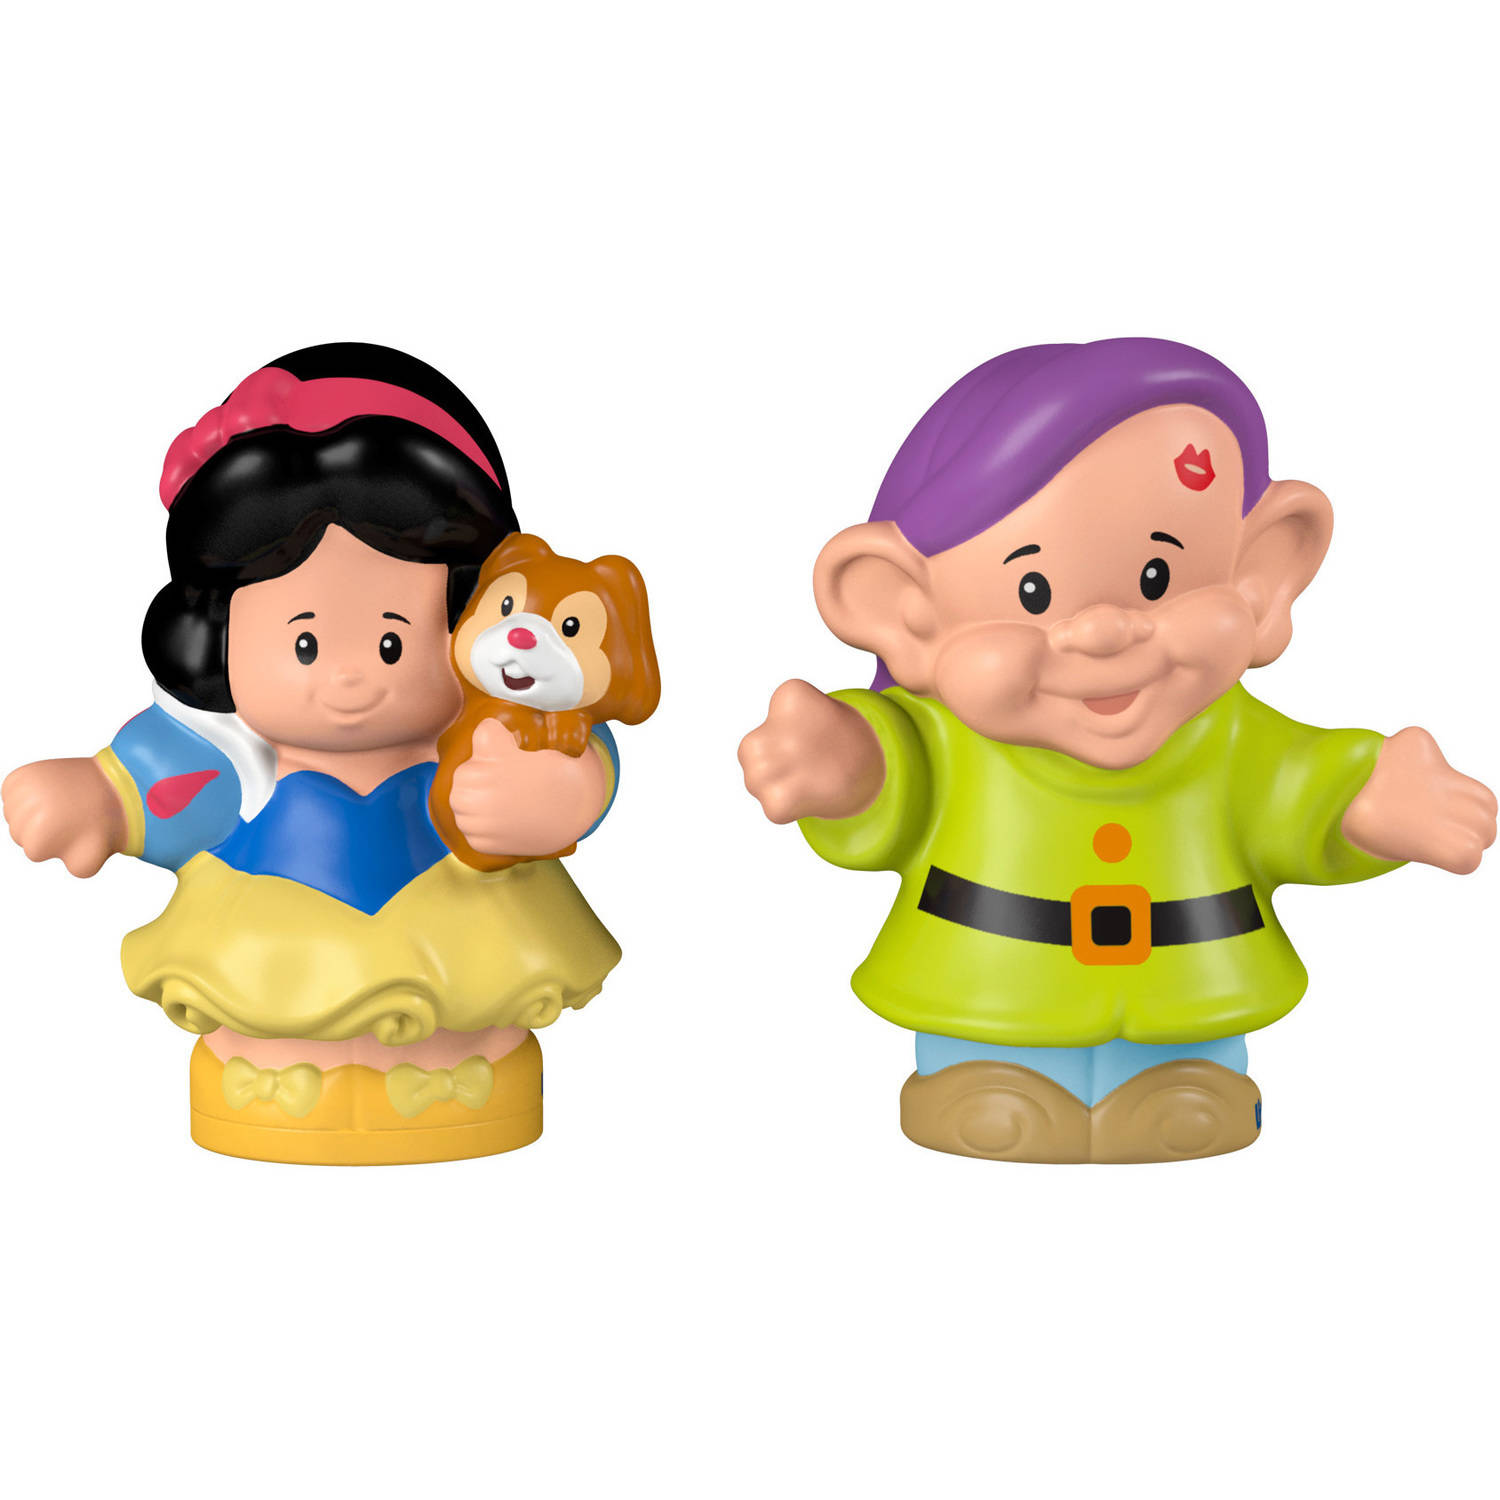 Fisher-Price Little People Disney Princess Snow White and Dopey Figures